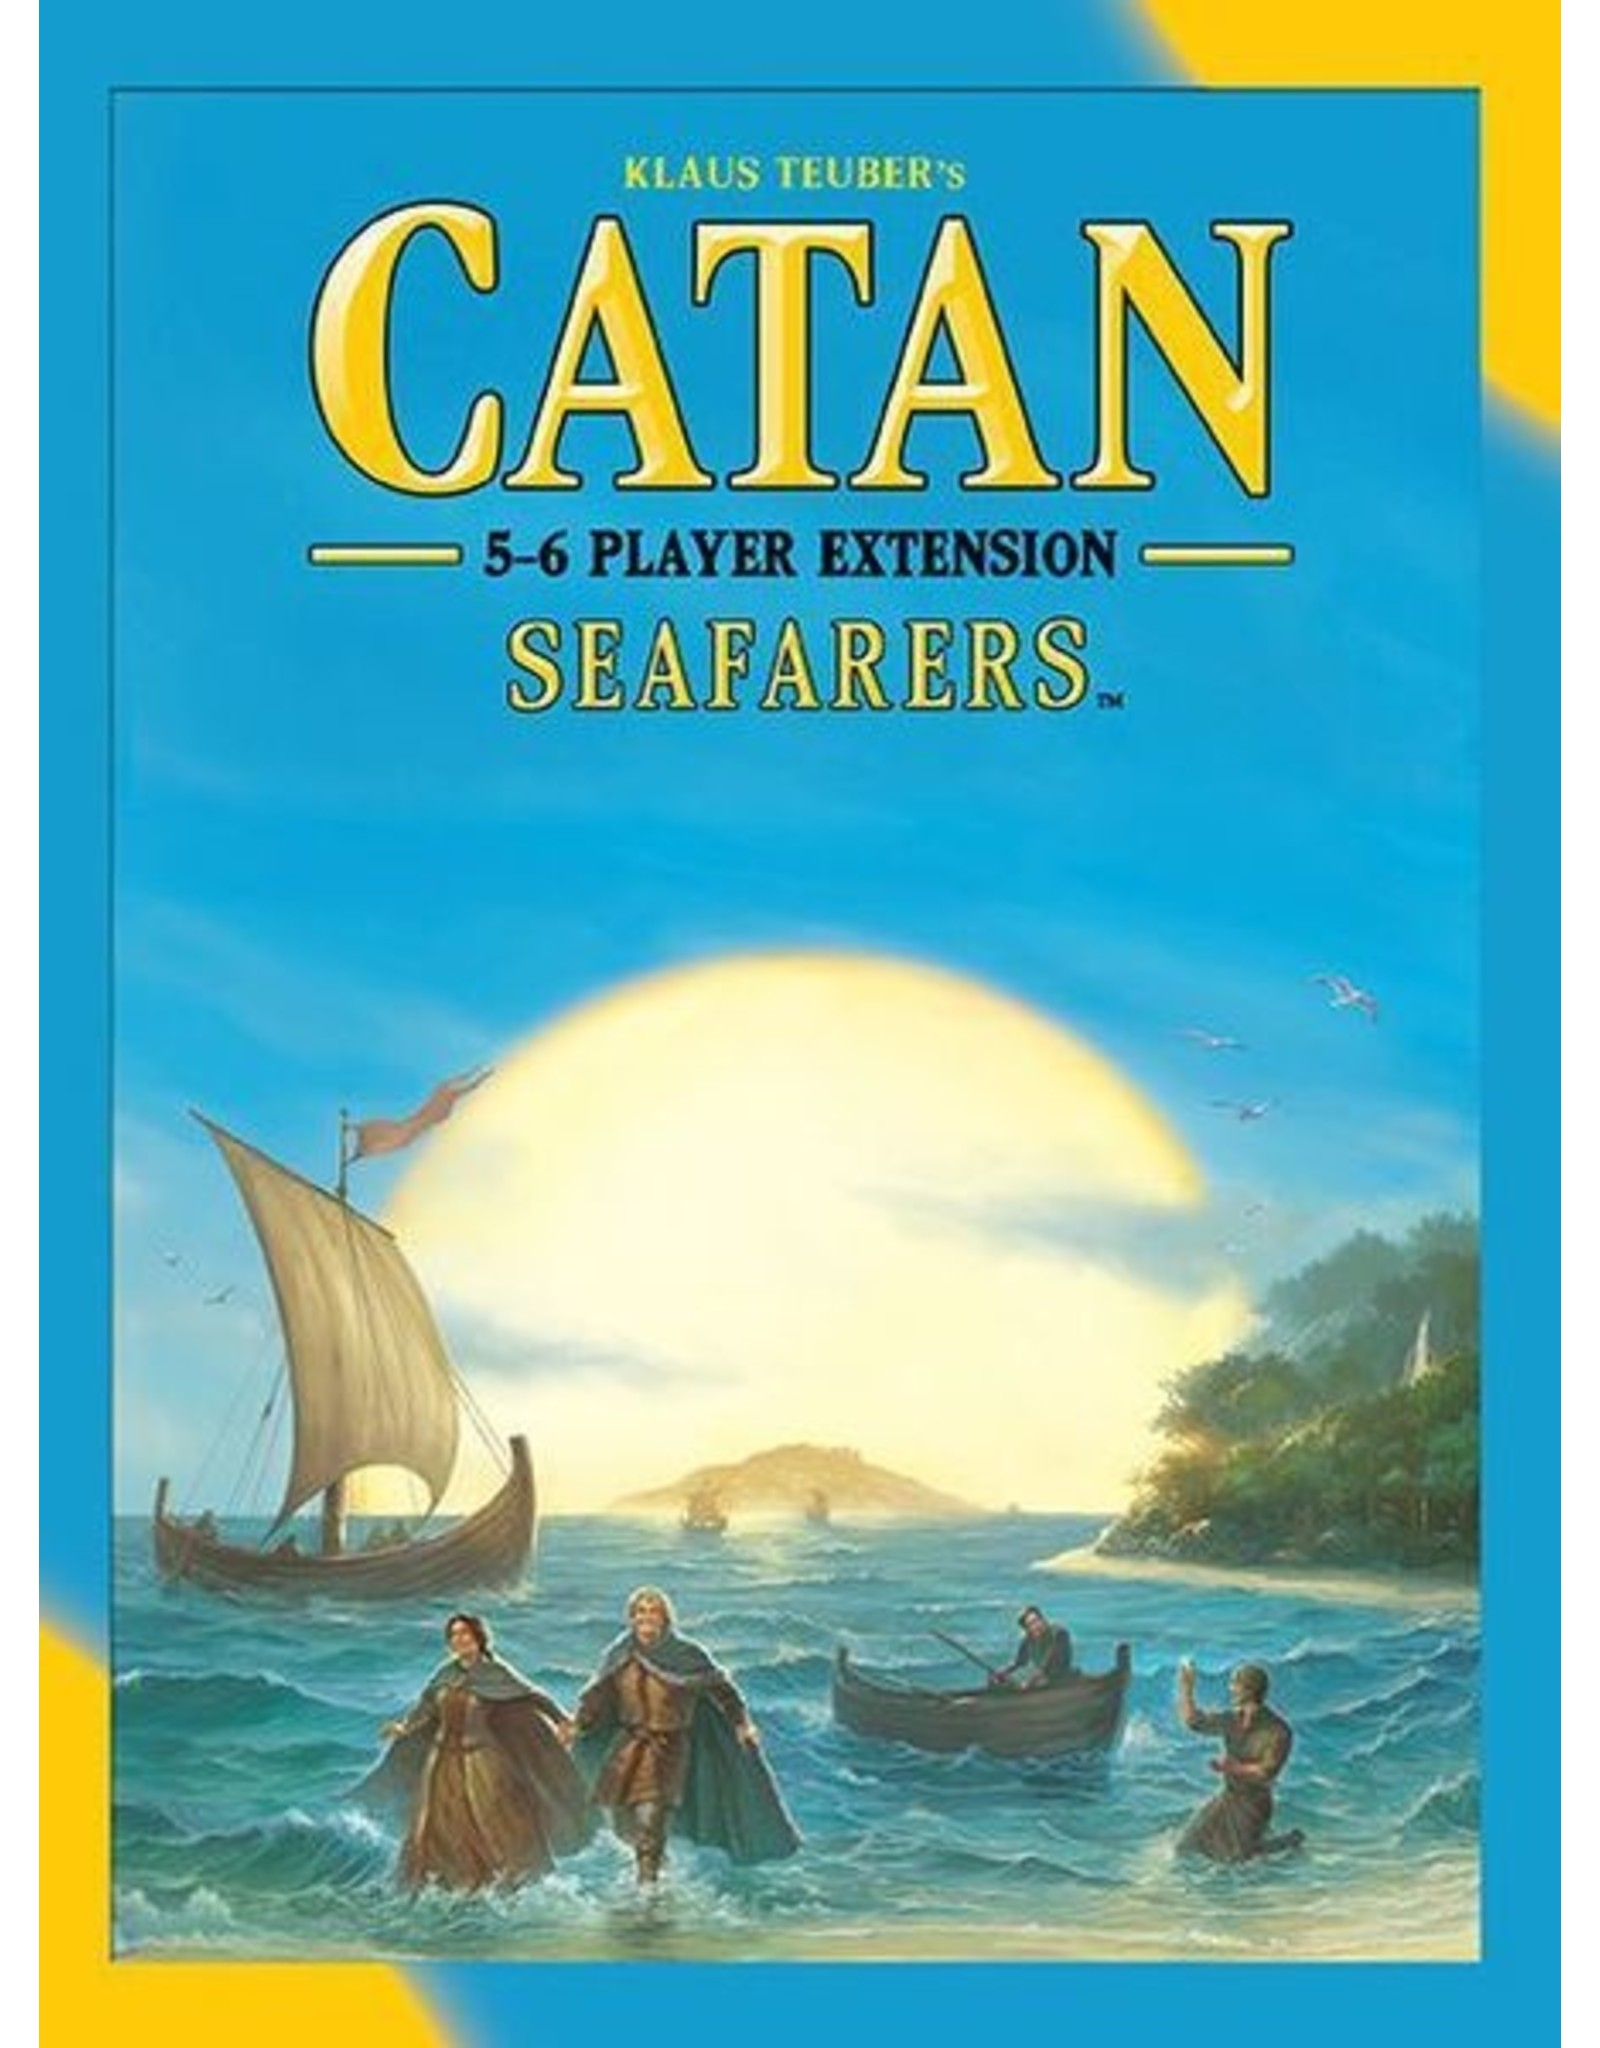 Catan Catan: Seafarers 5-6 Player Extension